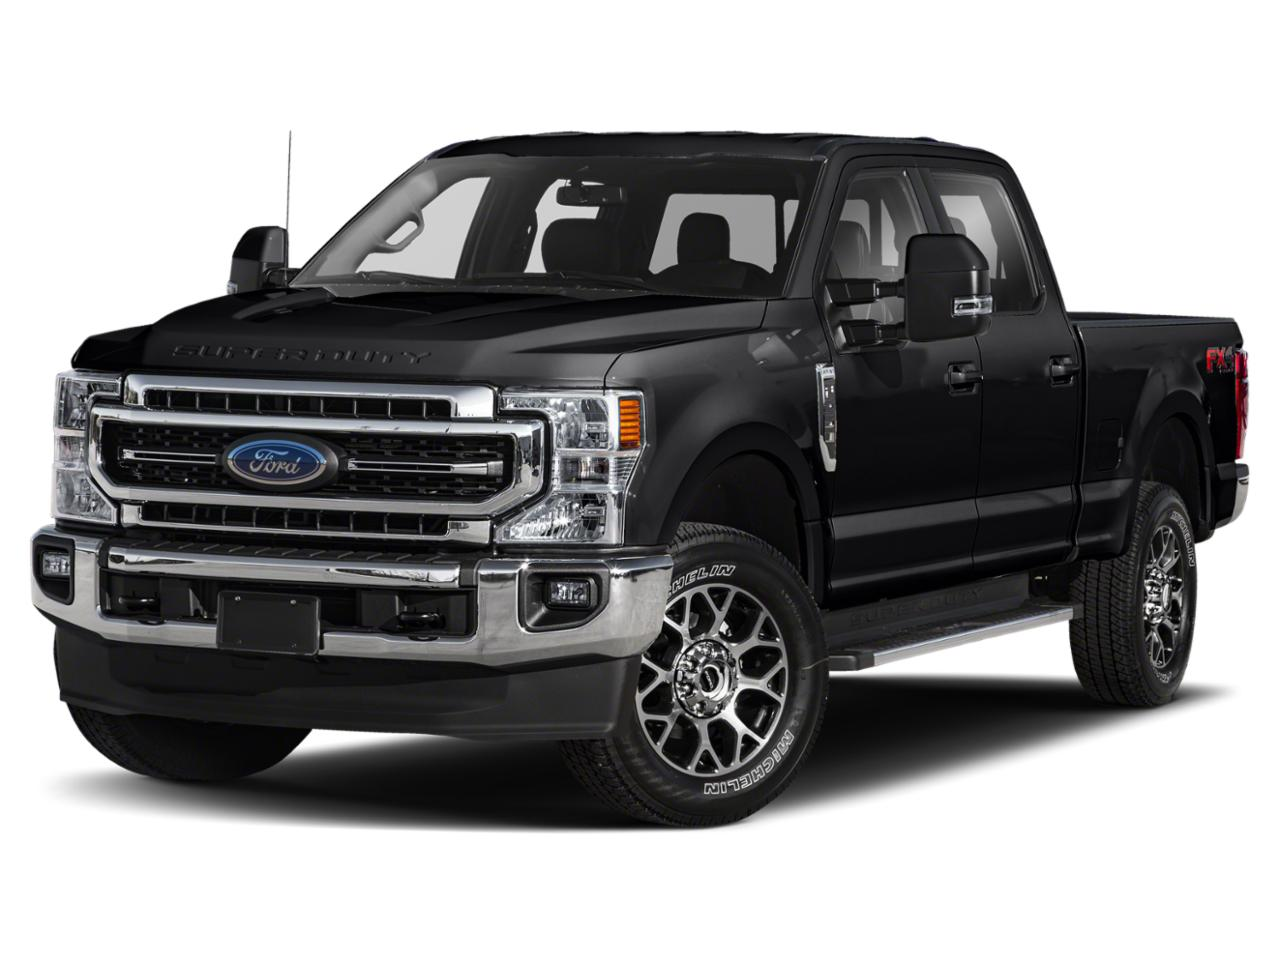 2020 Ford Super Duty F-250 SRW Vehicle Photo in BIRMINGHAM, AL 35216